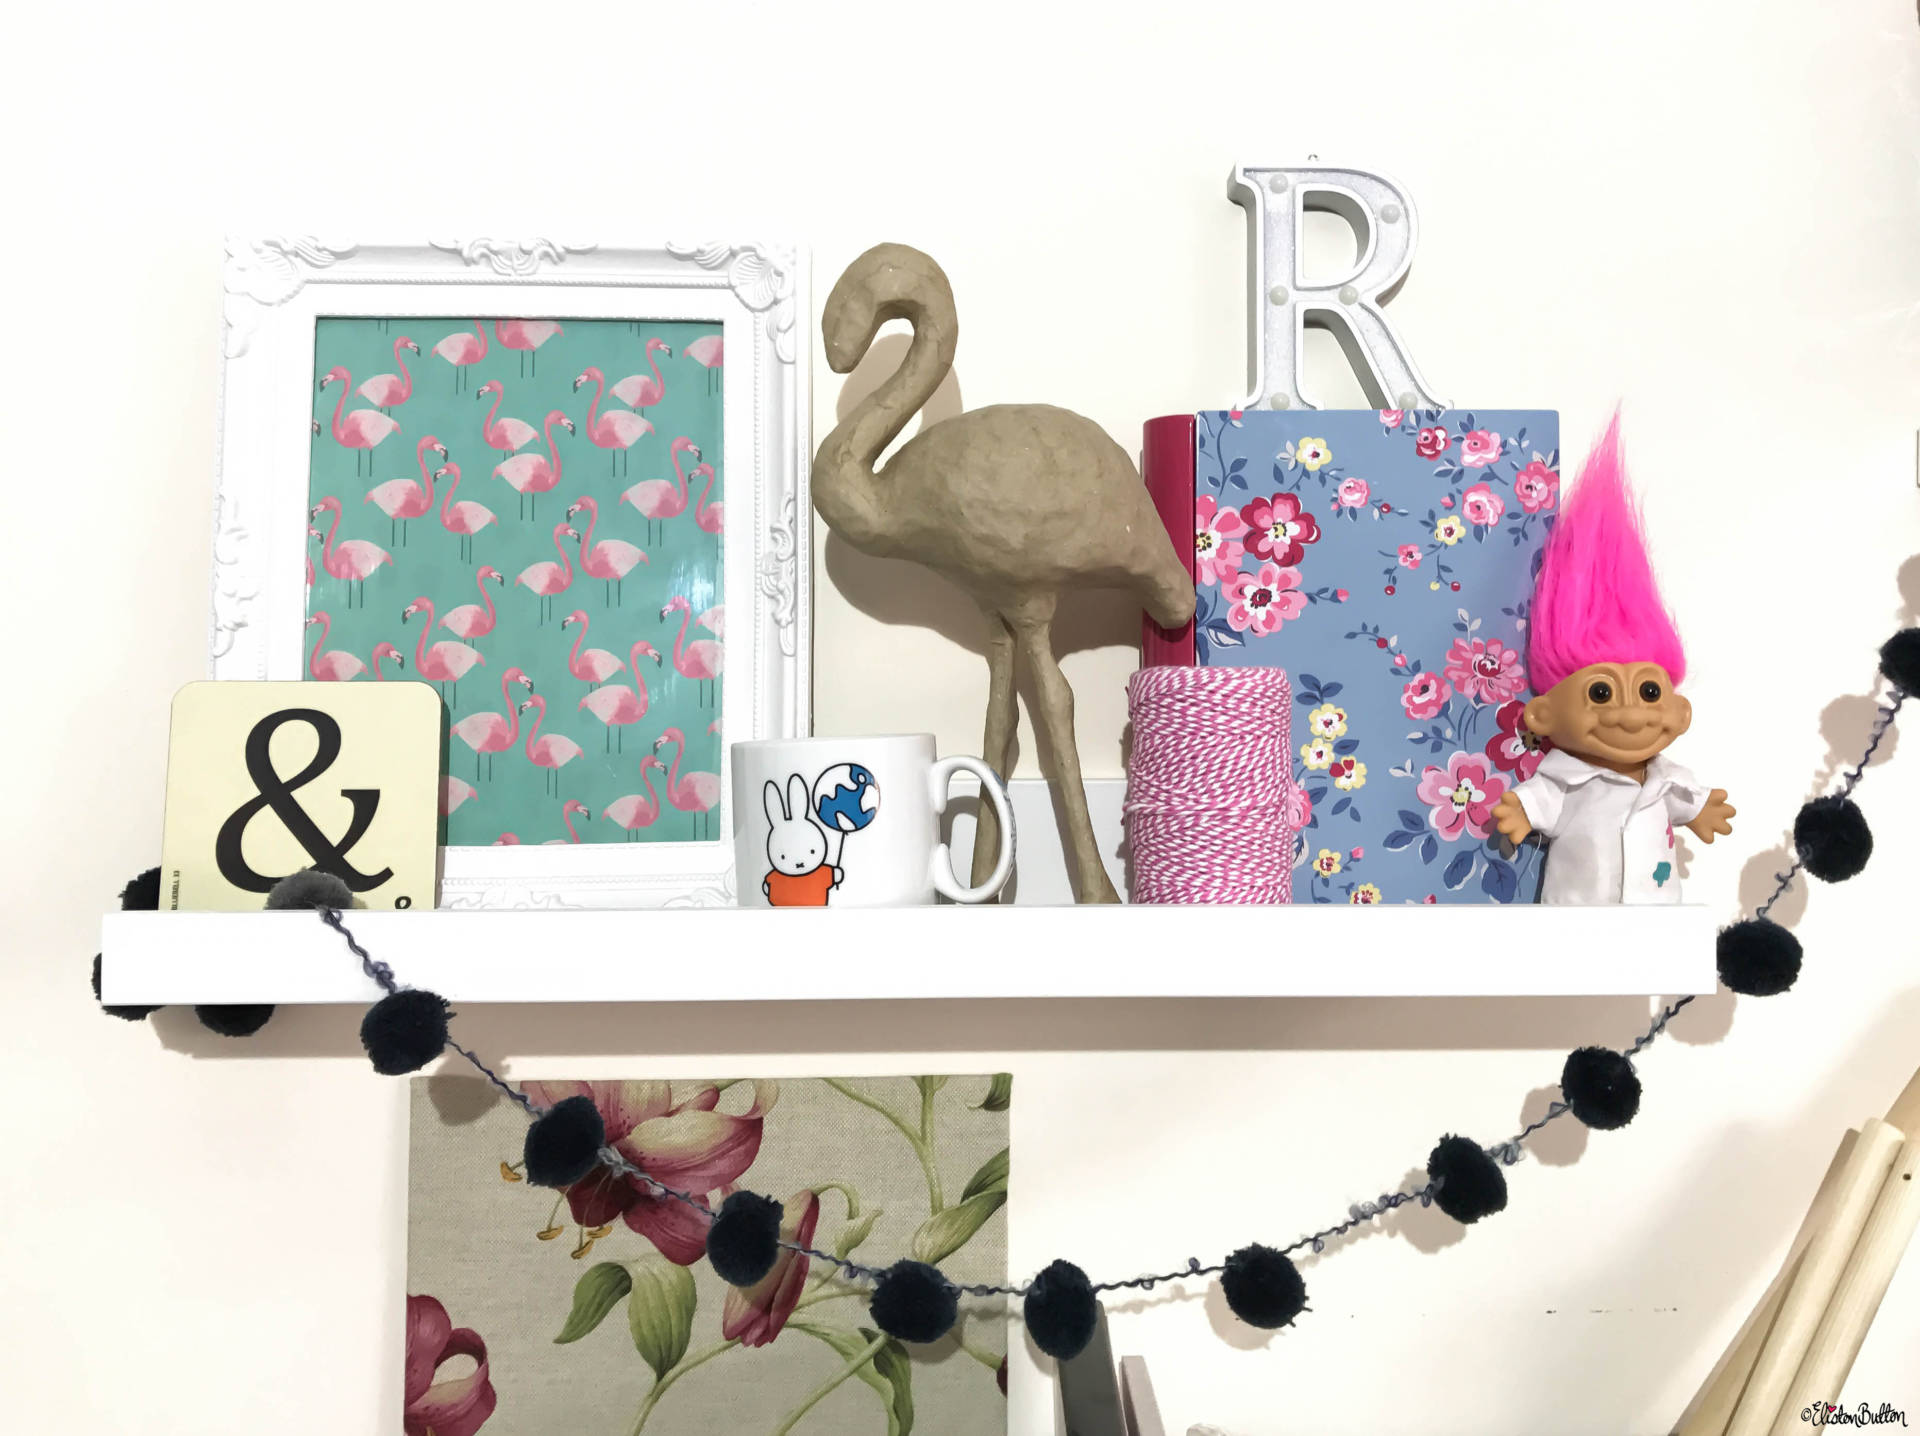 Eliston Button Headquarters - Creative Craft Studio - Paper Mache Flamingo, Miffy Mug, Troll and Pom Pom Garland - Eliston Button Headquarters – Part Two at www.elistonbutton.com - Eliston Button - That Crafty Kid – Art, Design, Craft & Adventure.